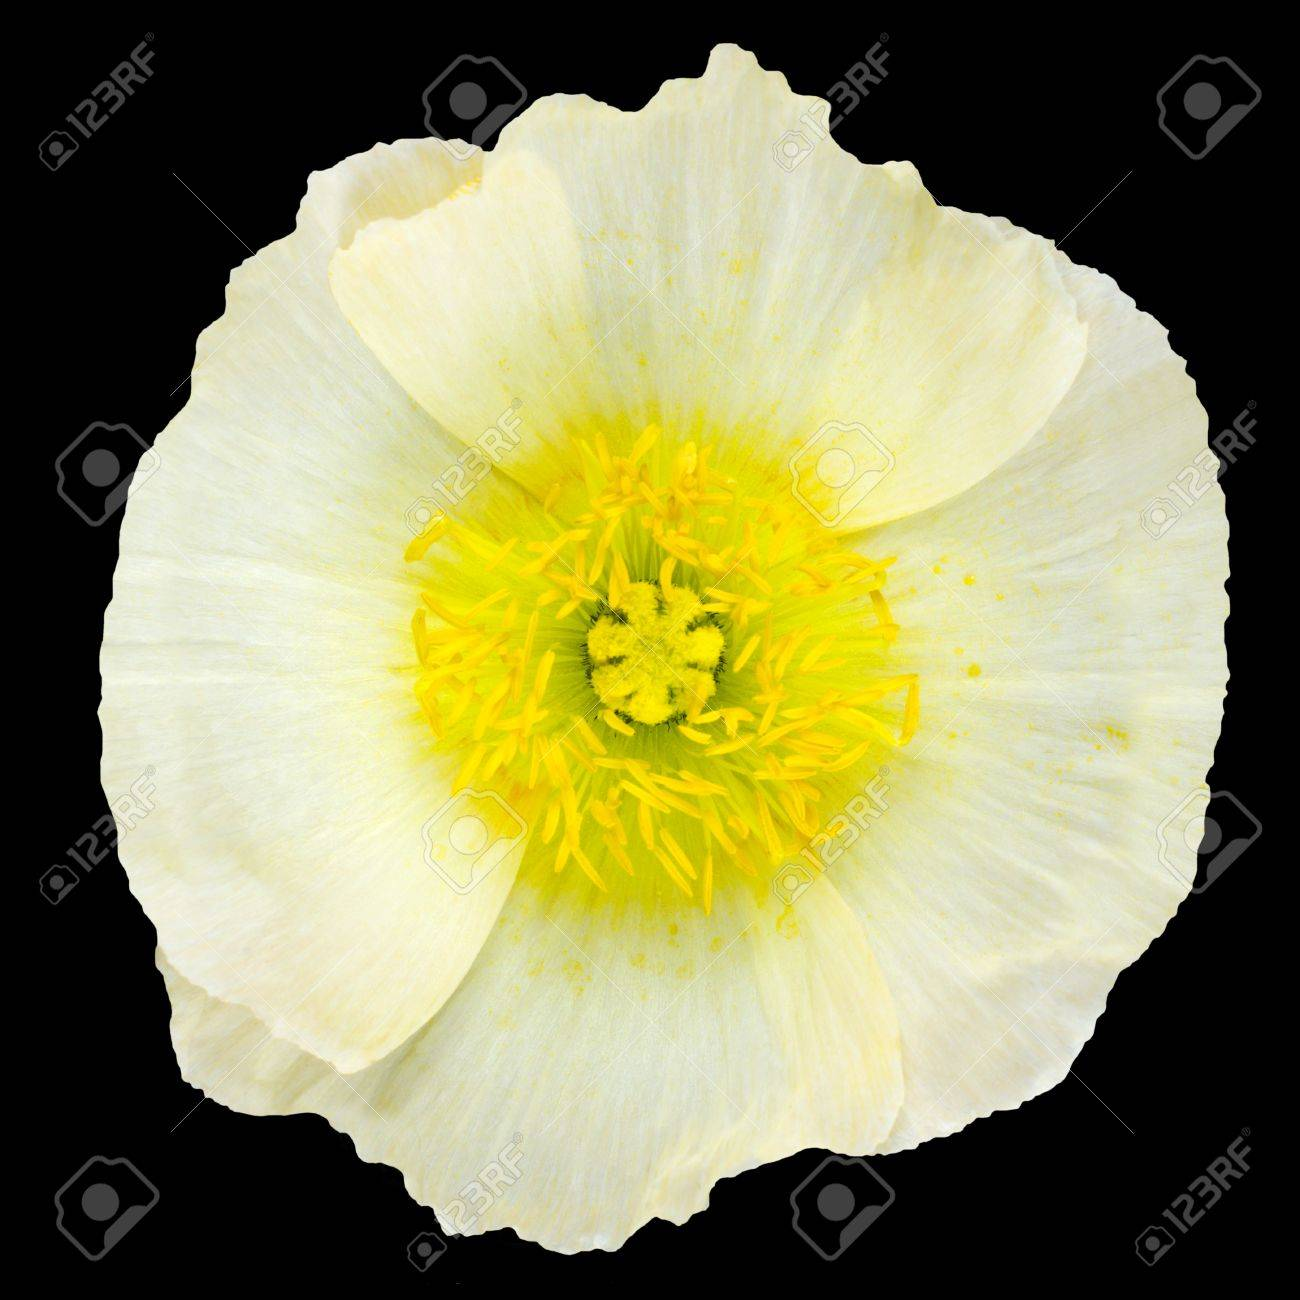 White poppy flower macro with yellow center isolated on black stock photo white poppy flower macro with yellow center isolated on black background mightylinksfo